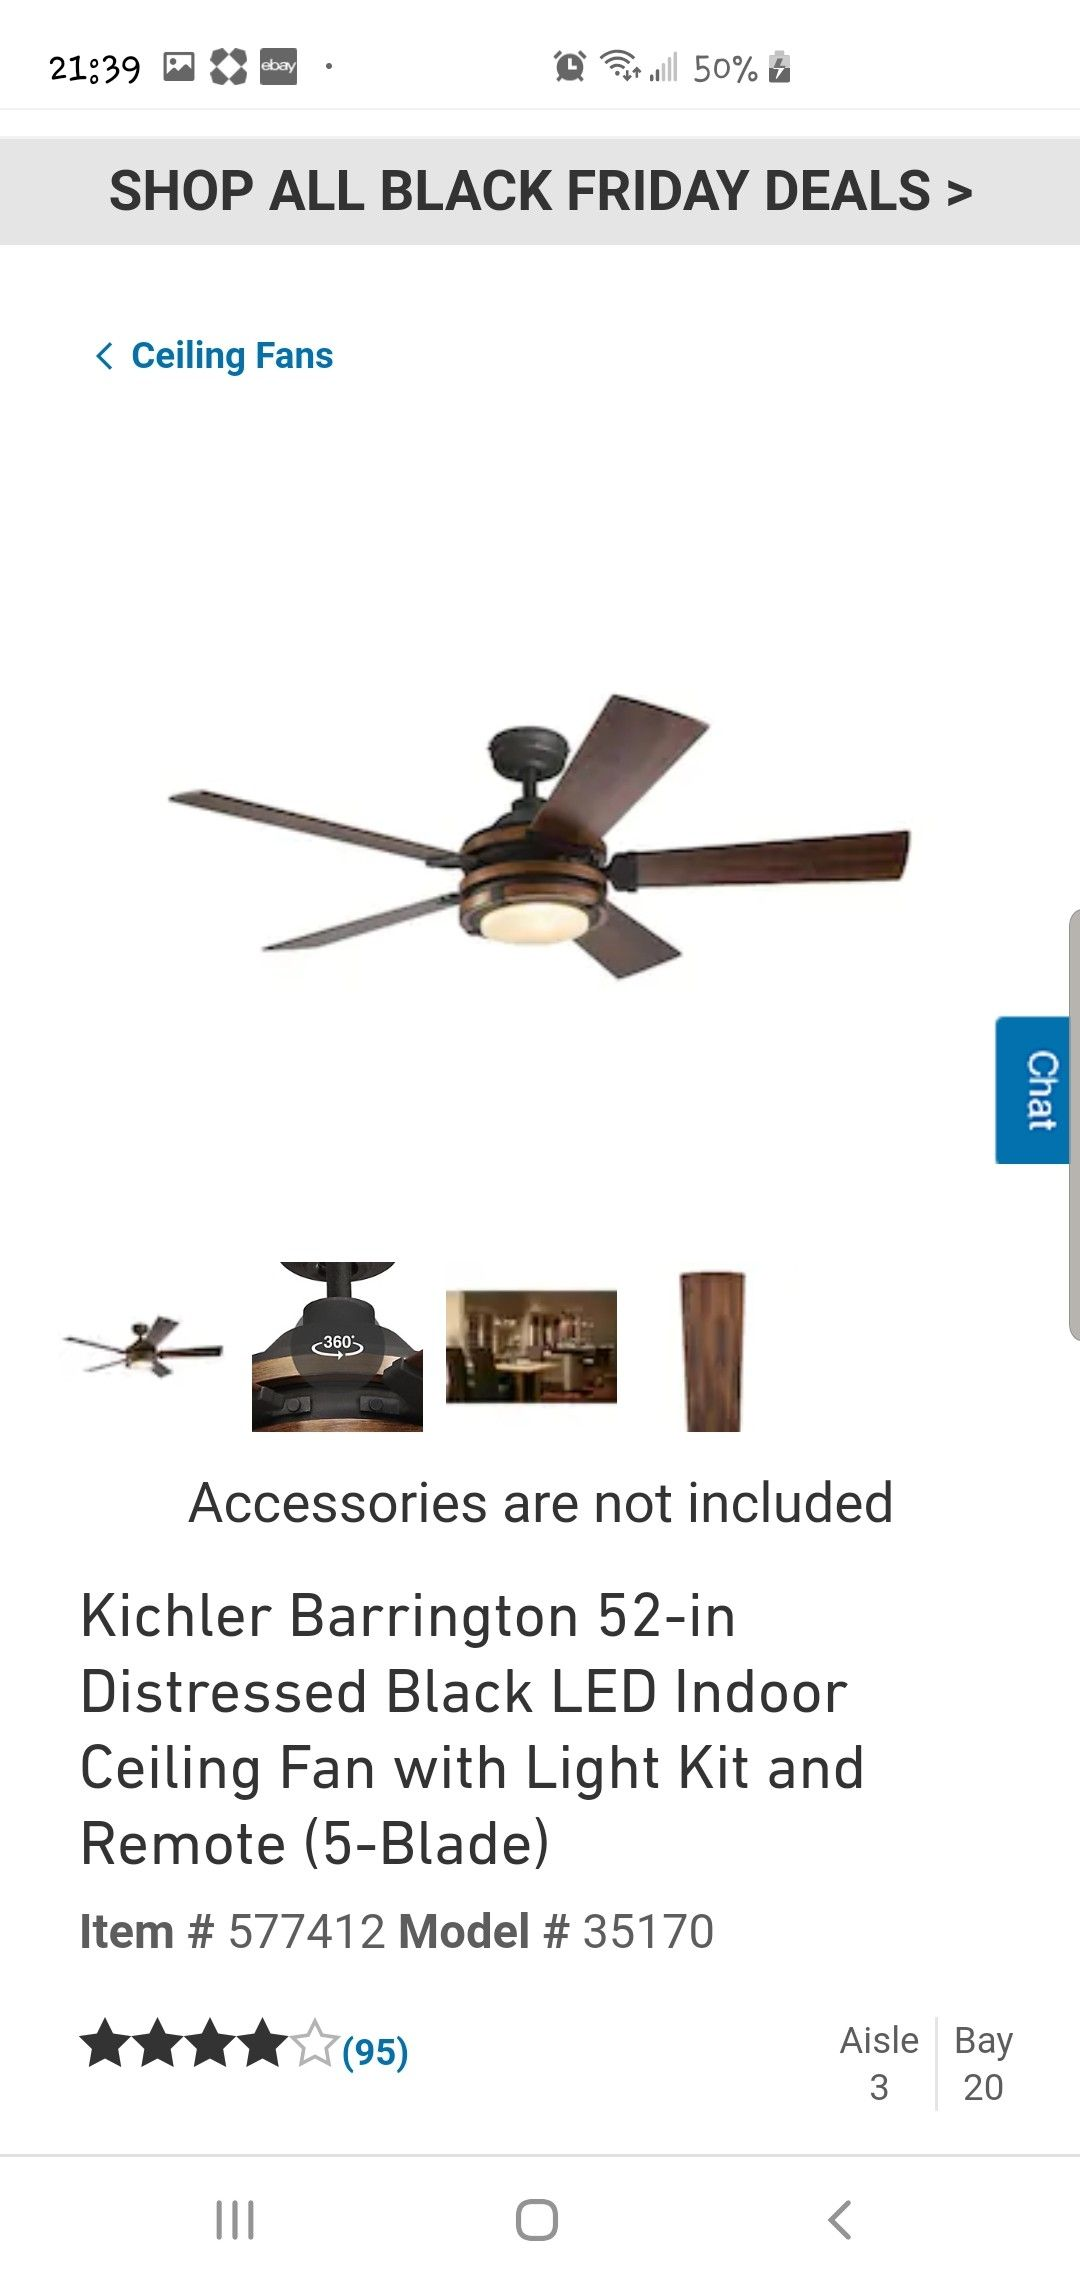 Pin By Tamika Lashelle On Inspired Home Ceiling Fan With Light Inspired Homes Ceiling Fan Black friday ceiling fans deals